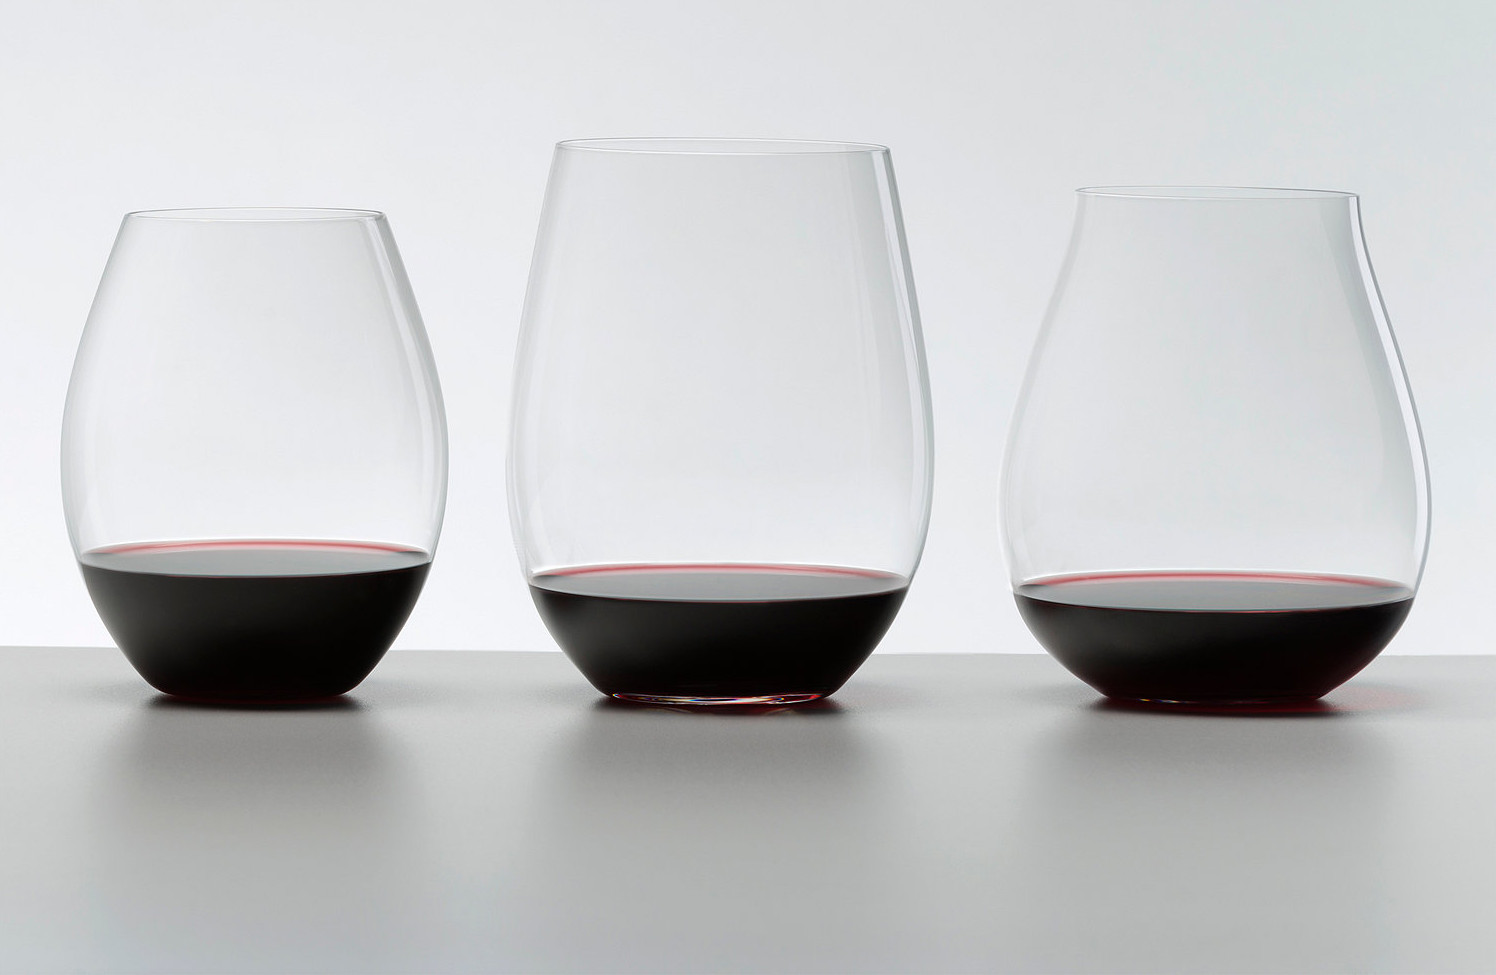 The Big 'O' Red Wine Set from Riedel